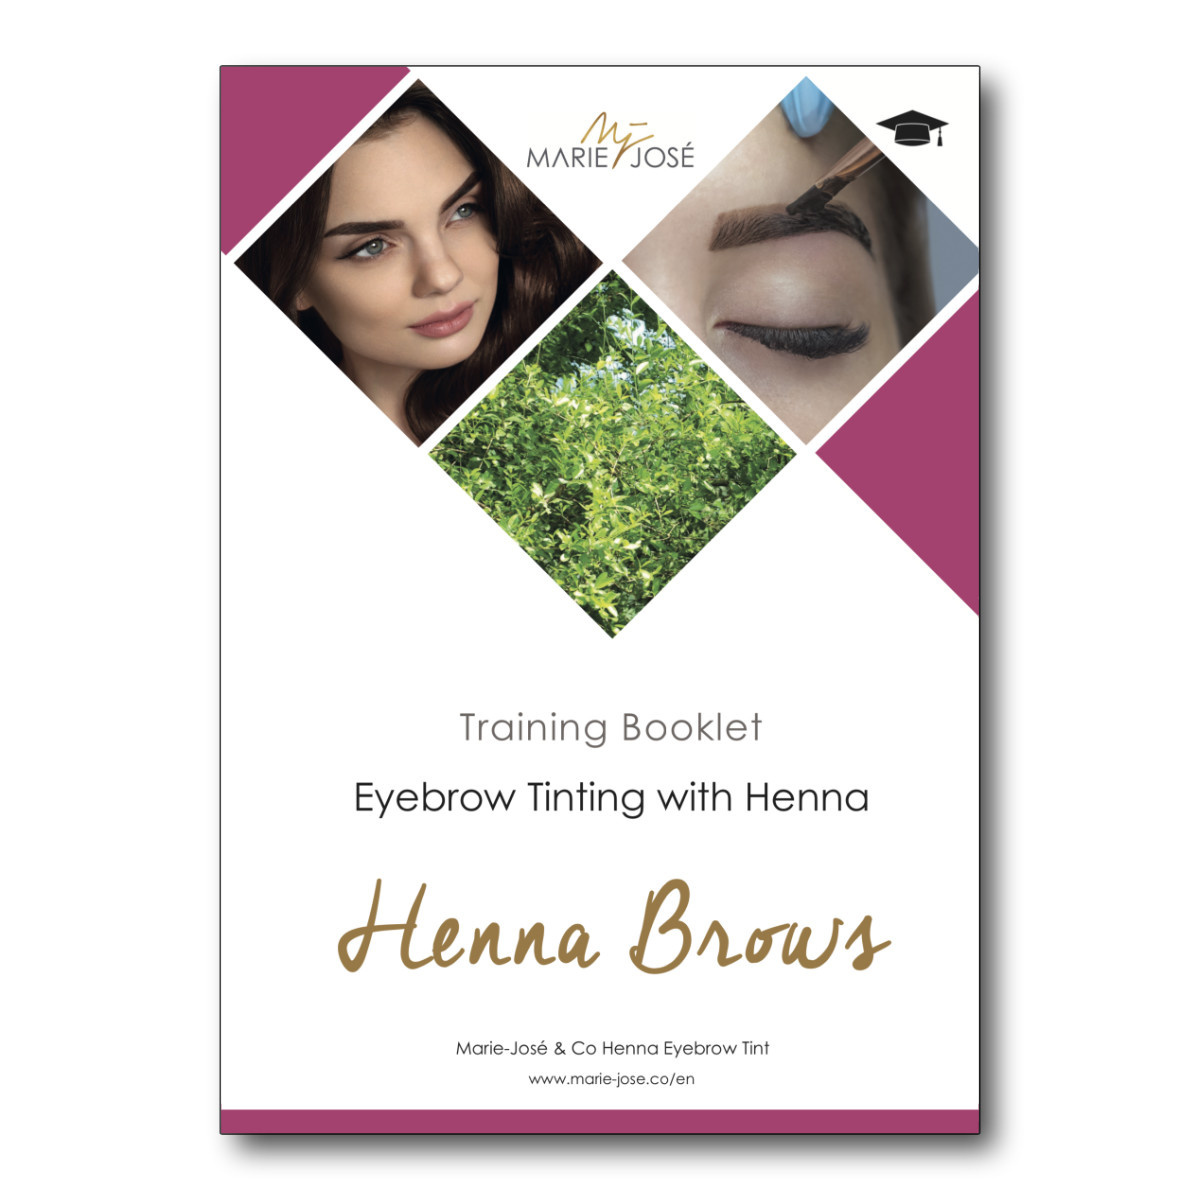 Henna Brows Training Booklet